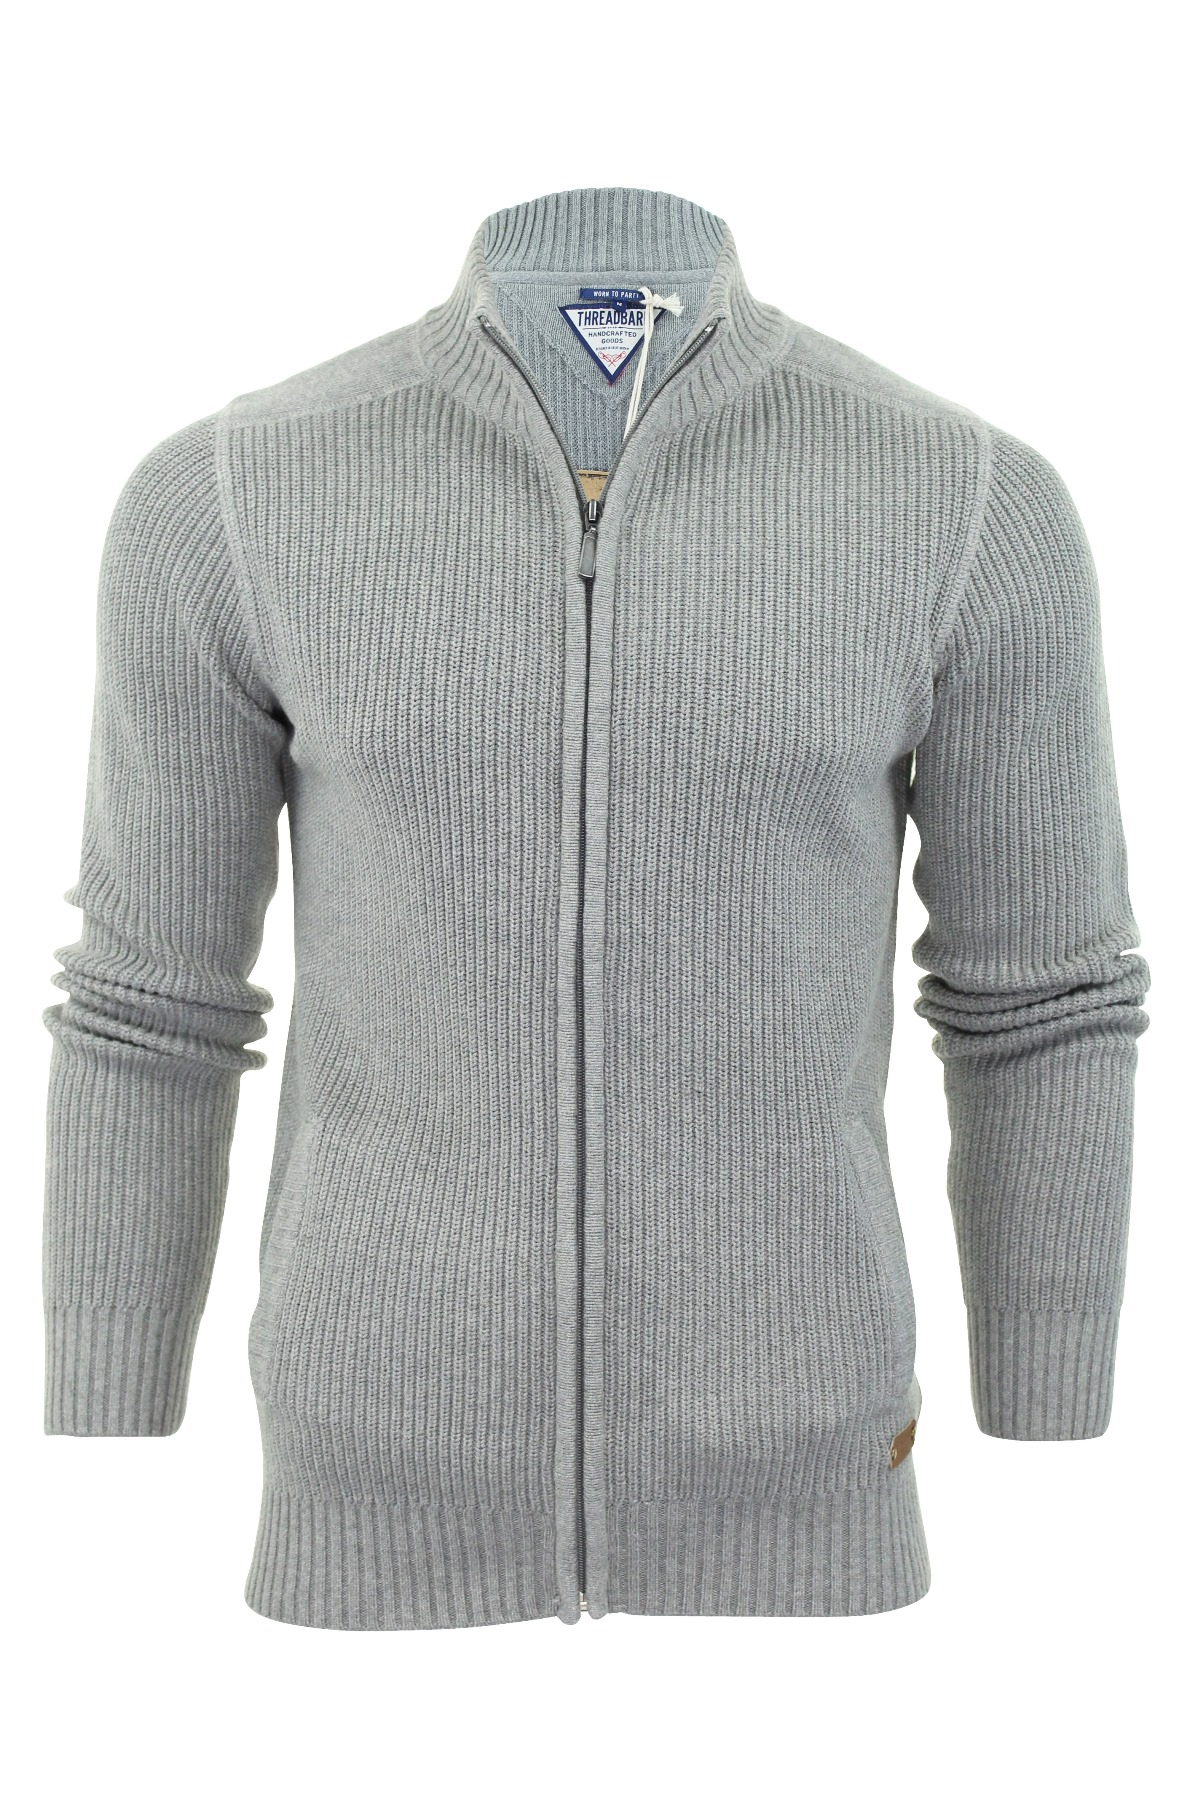 Mens Sweater Zip Up - Gray Cardigan Sweater